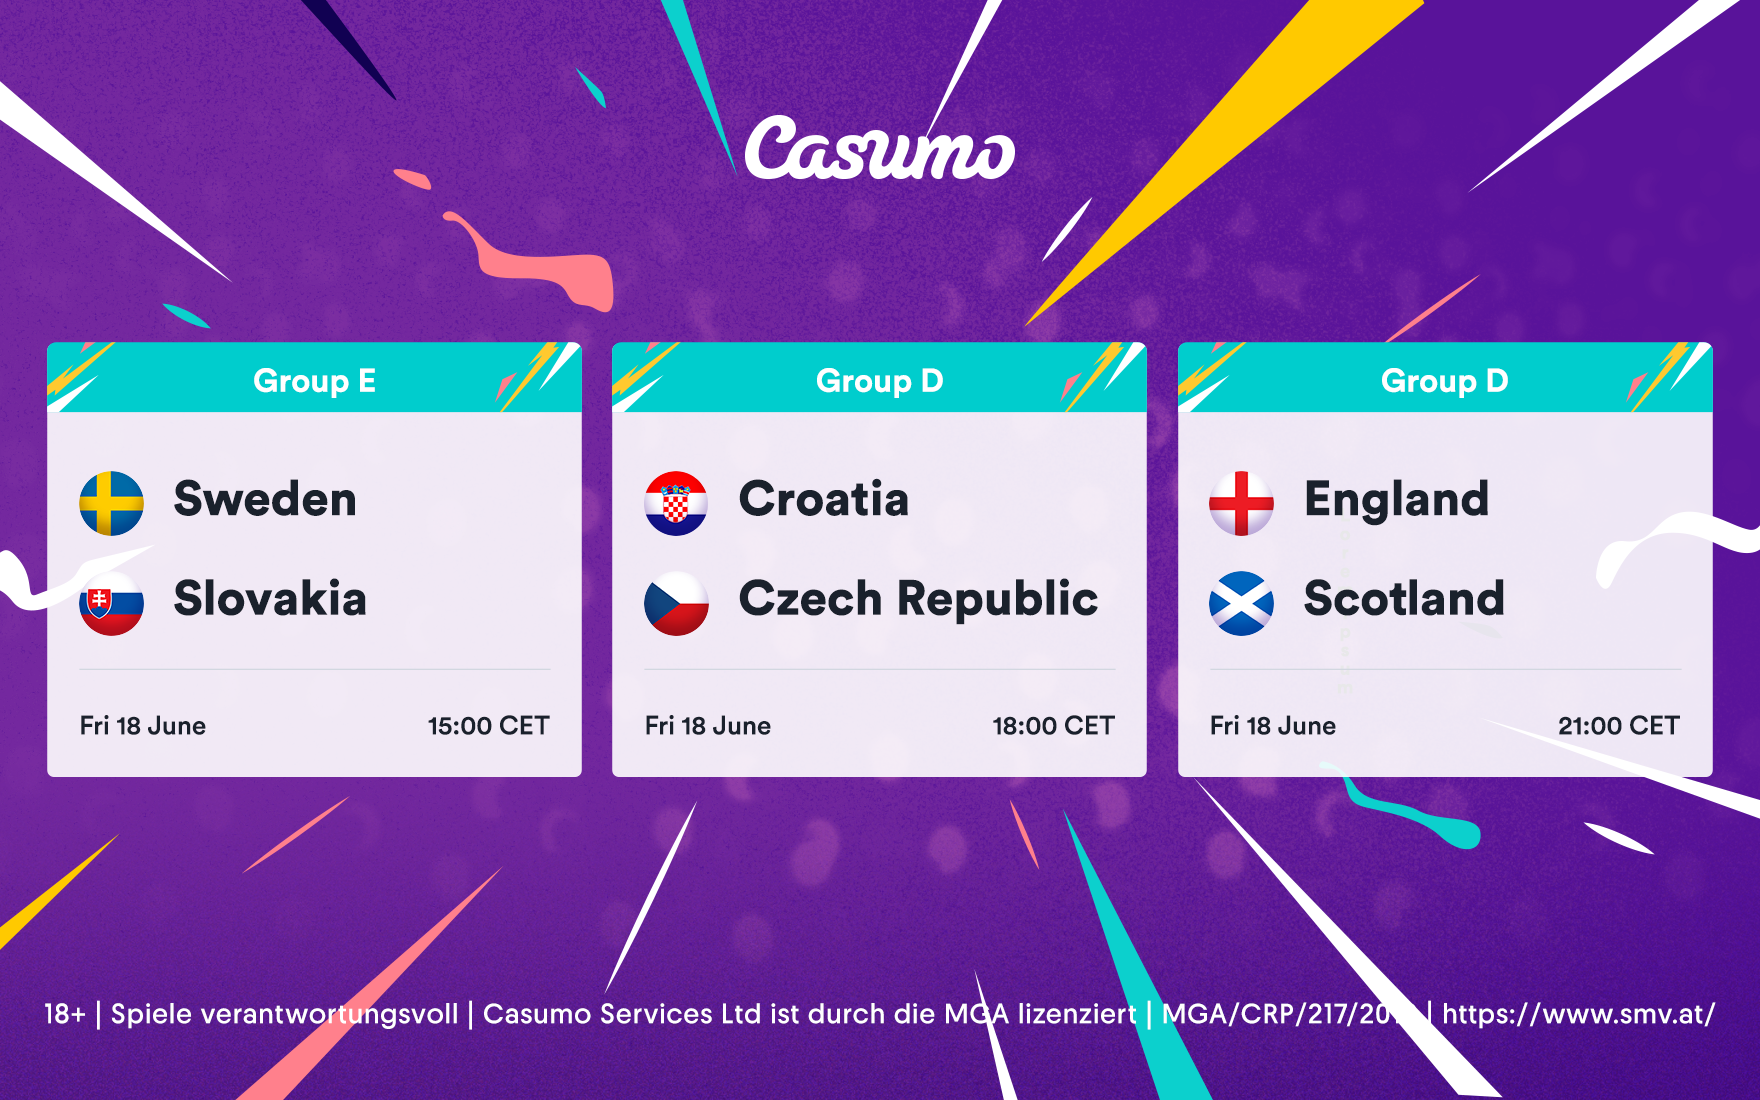 Friday 18th June Euro 2020 preview